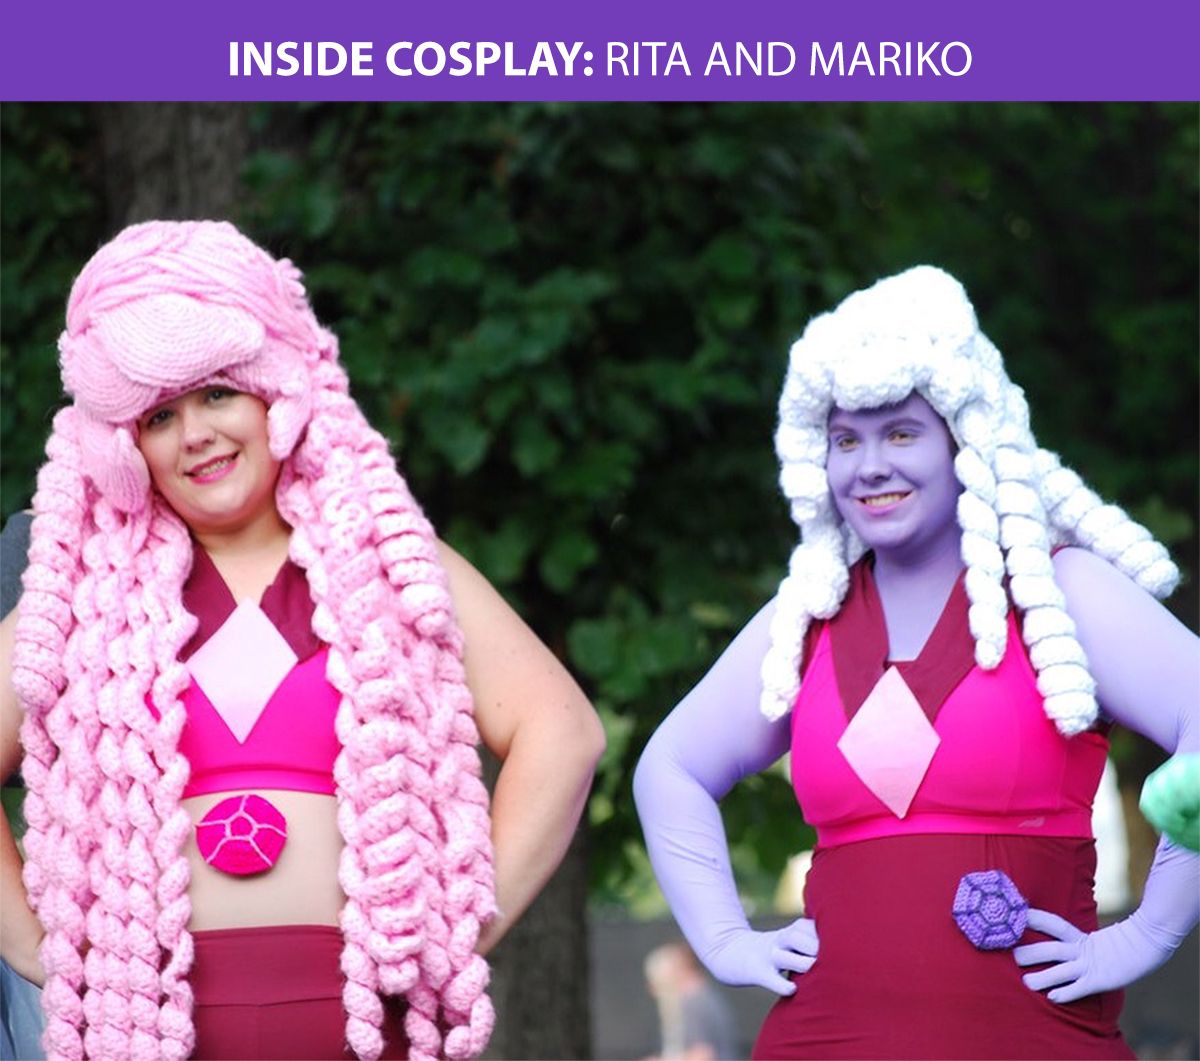 Inside Cosplay: Crocheting Costumes By Rita And Mariko - We Love Colors